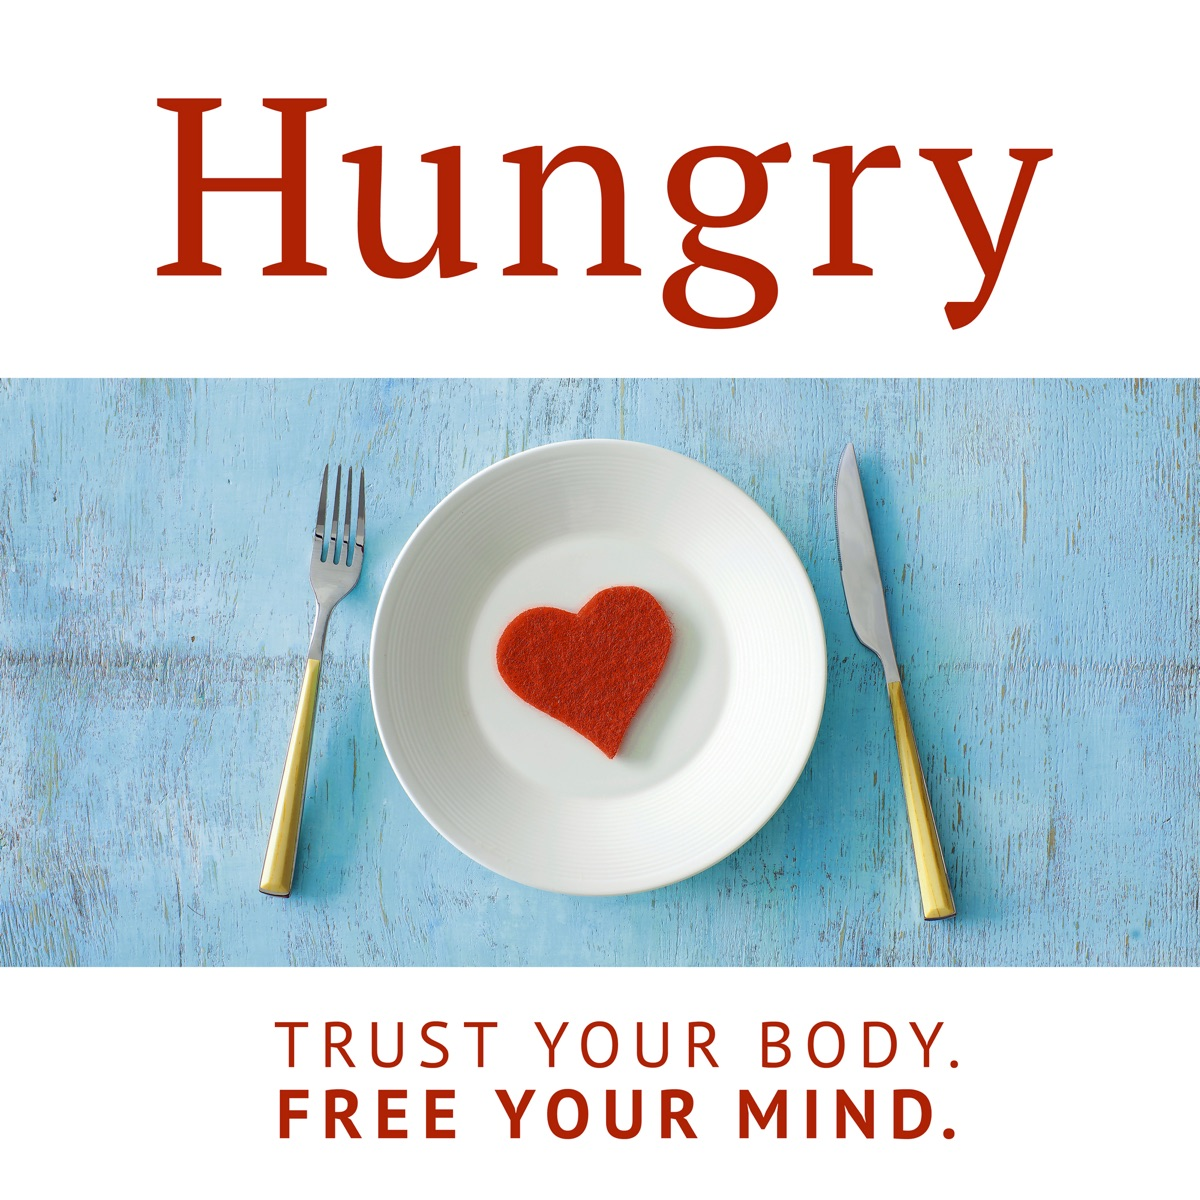 Hungry: Trust Your Body. Free Your Mind.